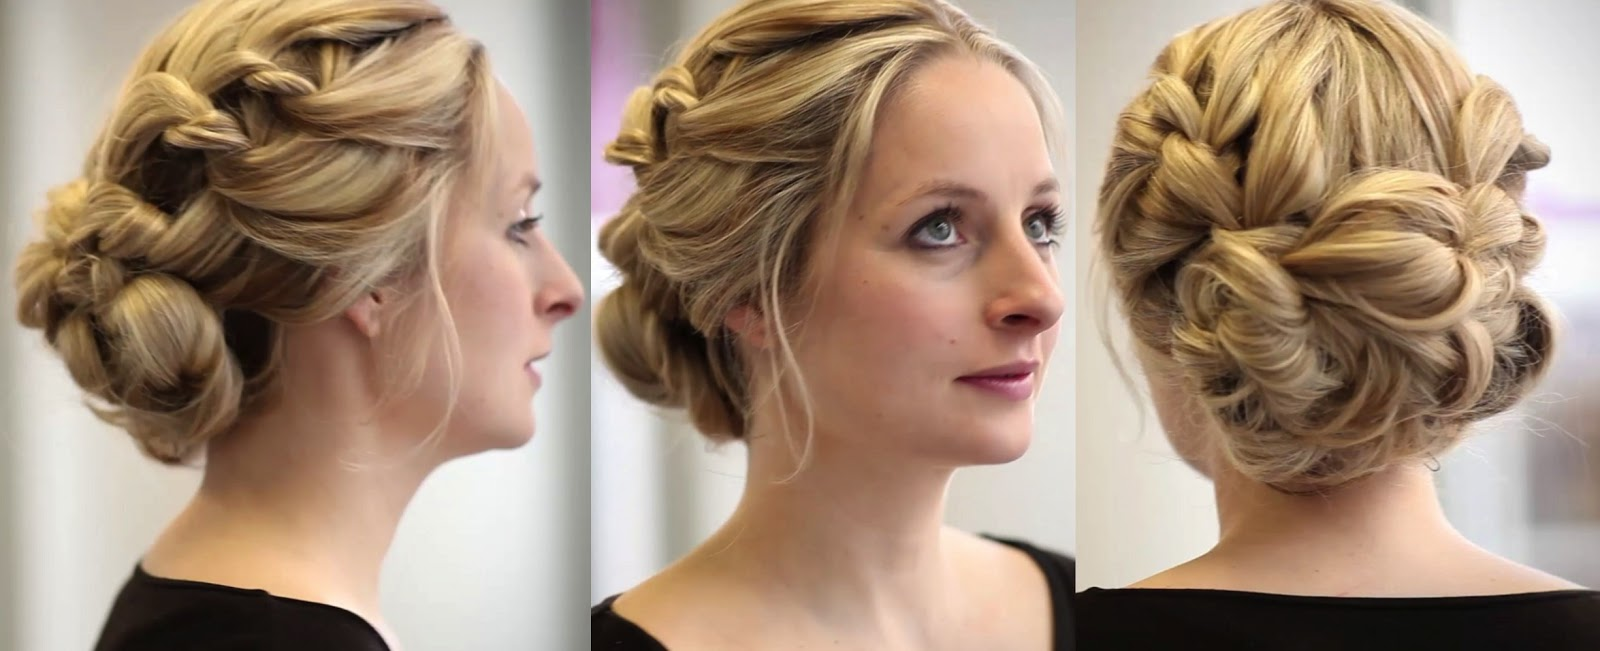 Bride De Force: Whimsical Bridesmaid Hairstyles with ghd